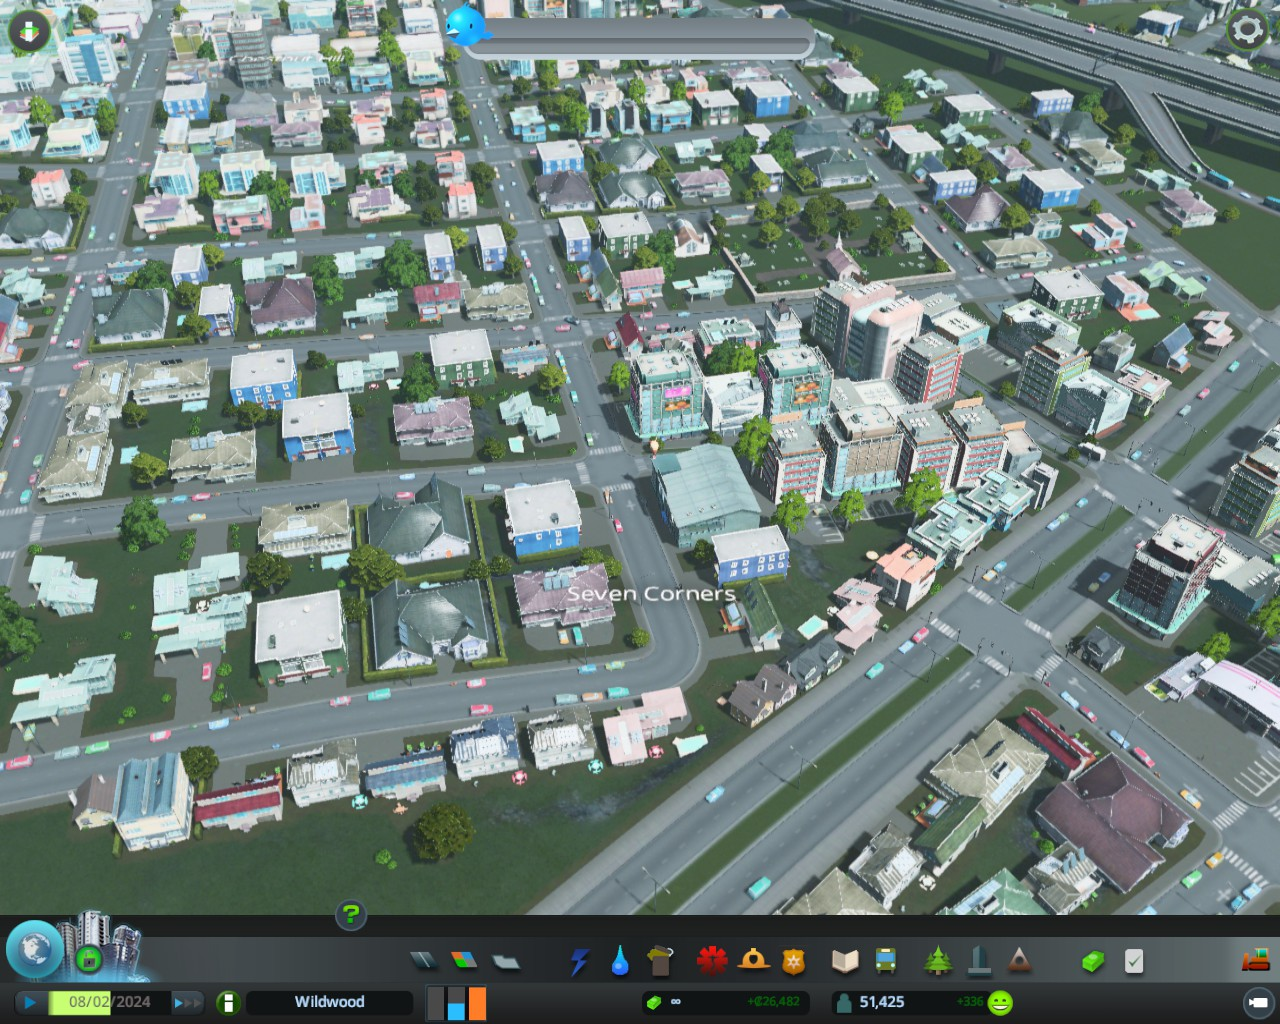 Cities Skylines takes over SimCity's mantle as top city